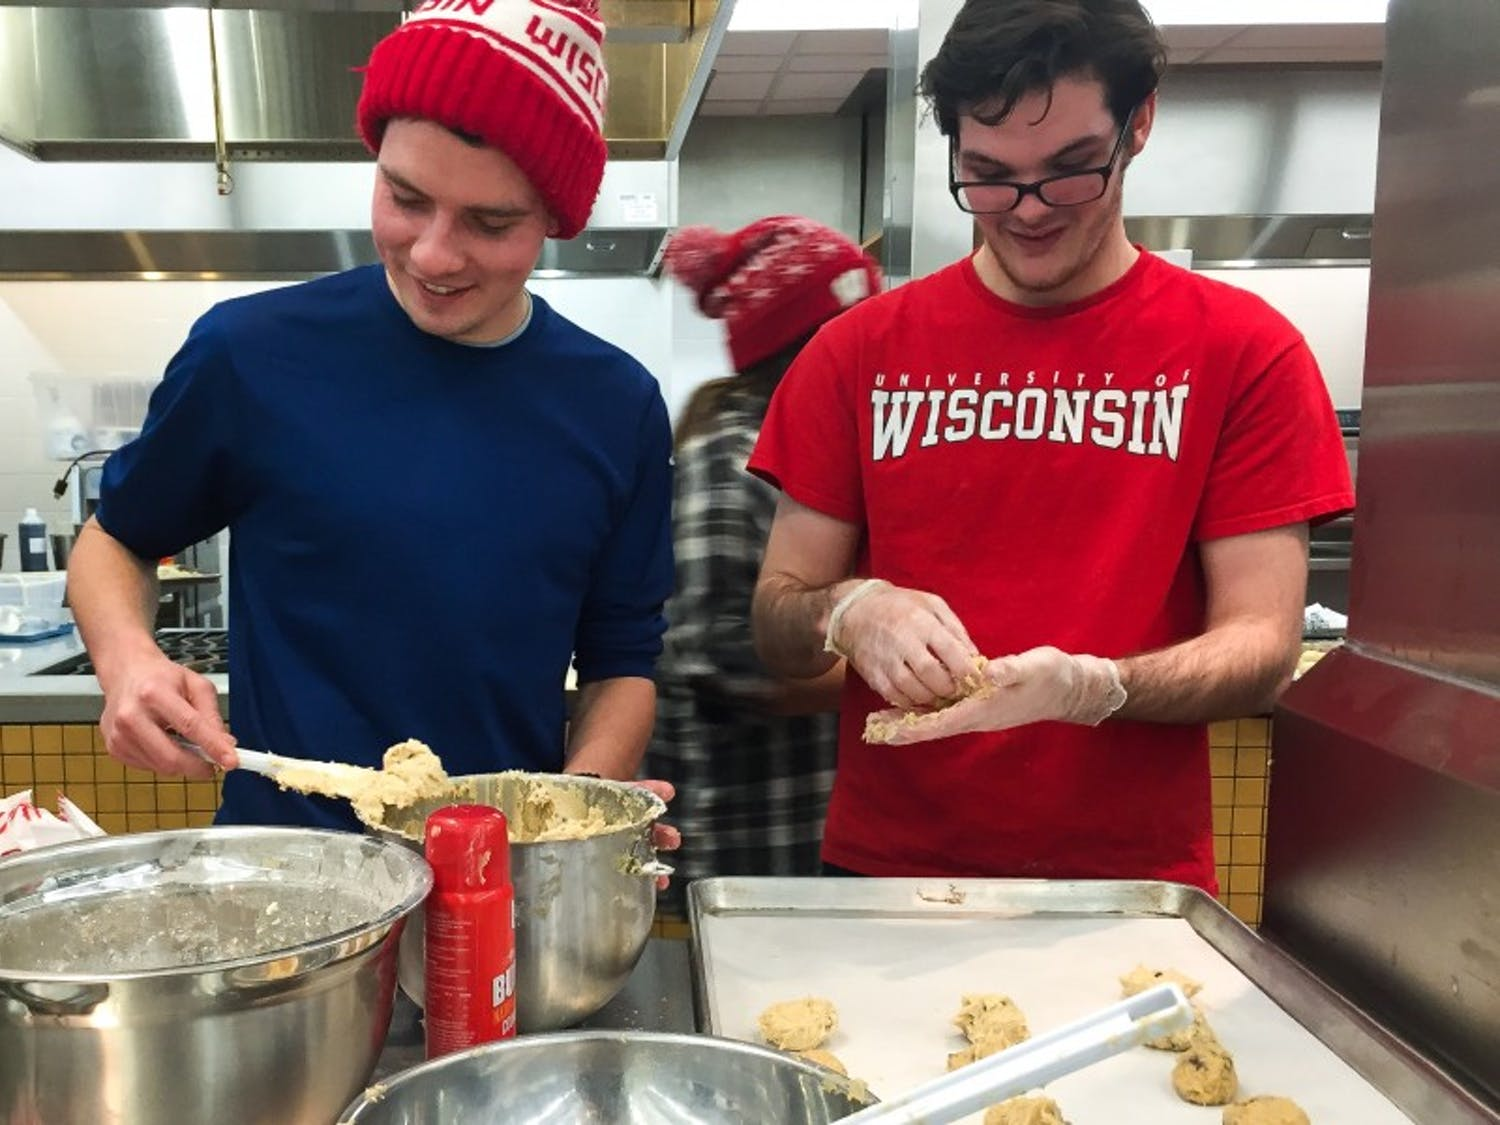 UW-Madison students participated in the event Sweets for Smiles, which was organized by Wisconsin Union Directorate Cuisine and WUD Alternative Breaks, to discuss homelessness and bake food for individuals in shelters.